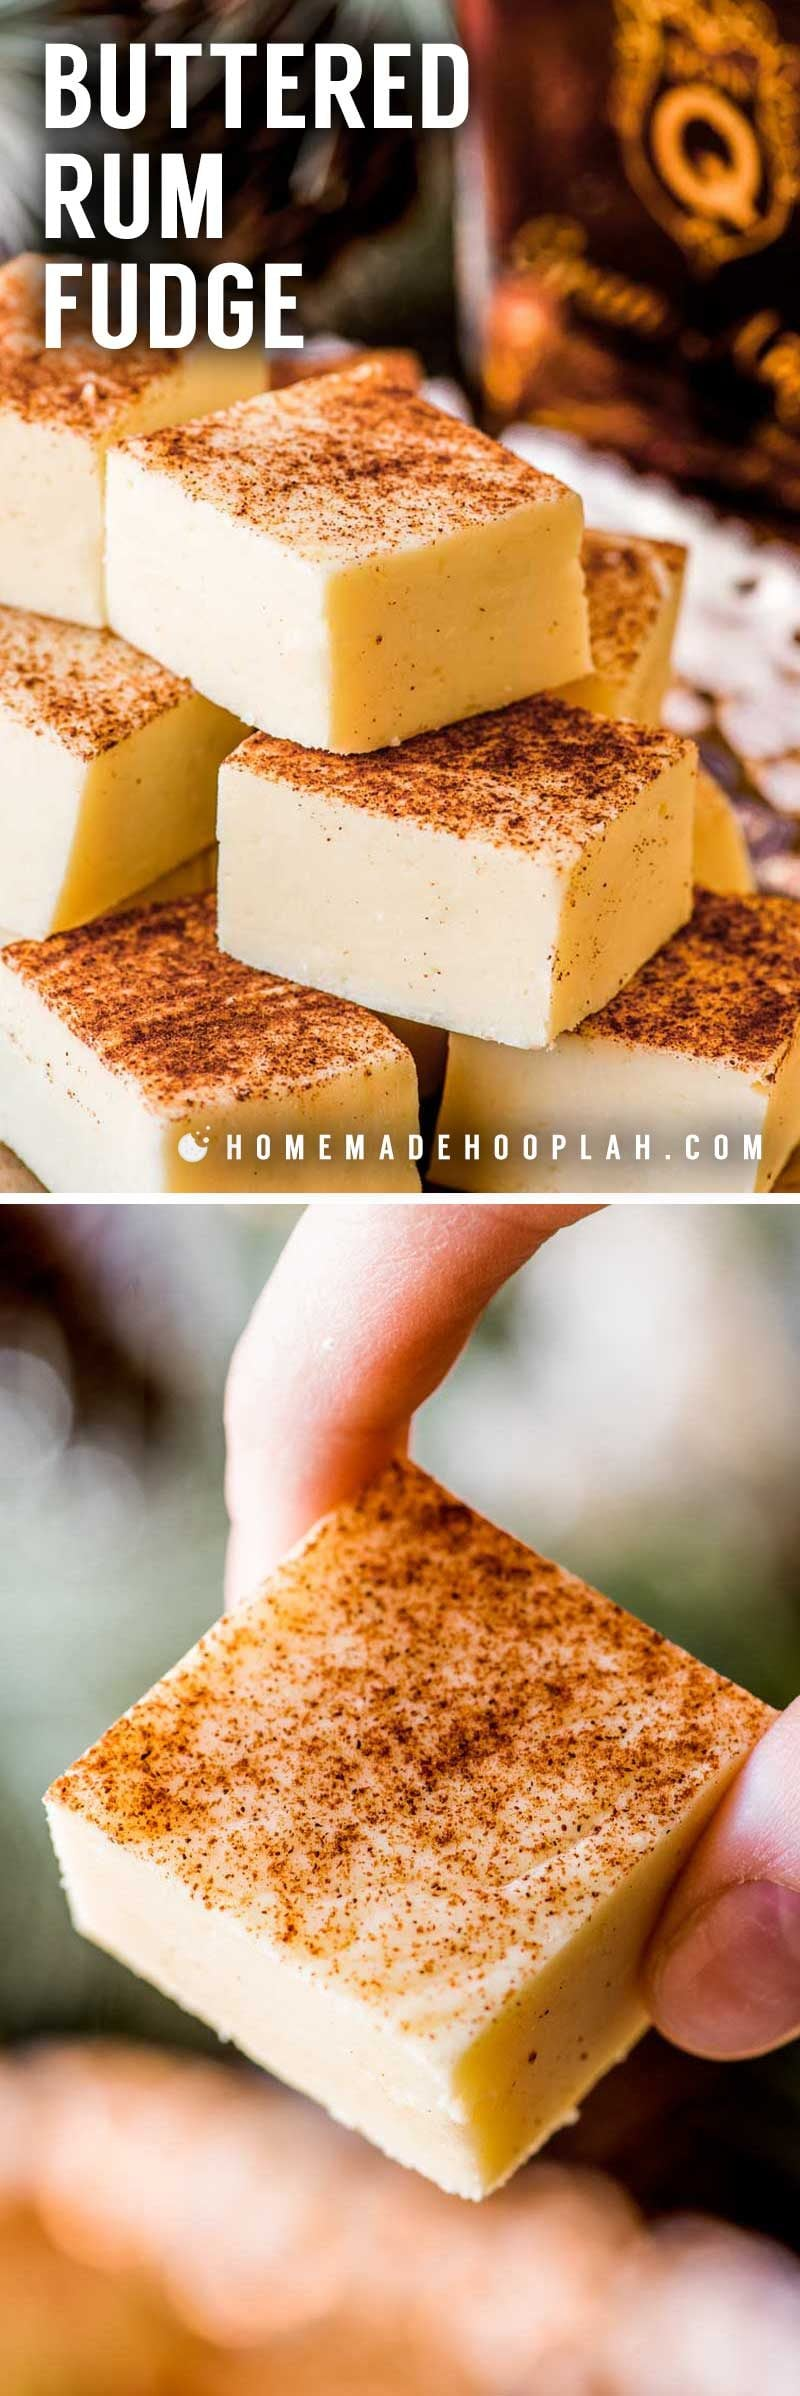 White candy fudge with rum.